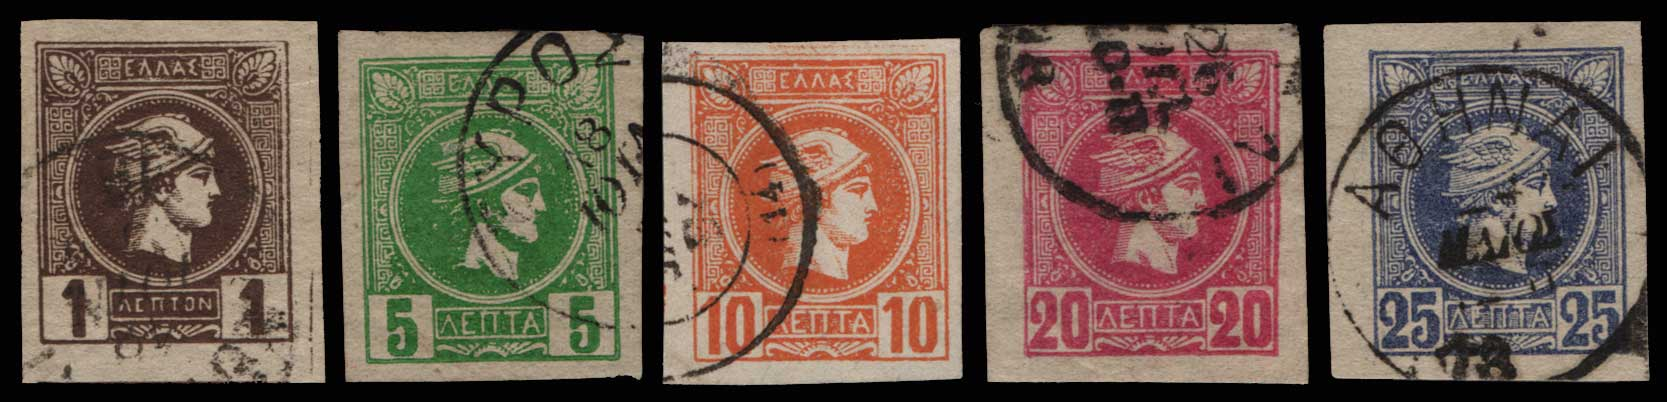 Lot 437 - -  SMALL HERMES HEAD ATHENSPRINTING - 1st PERIOD -  Athens Auctions Public Auction 77 General Stamp Sale